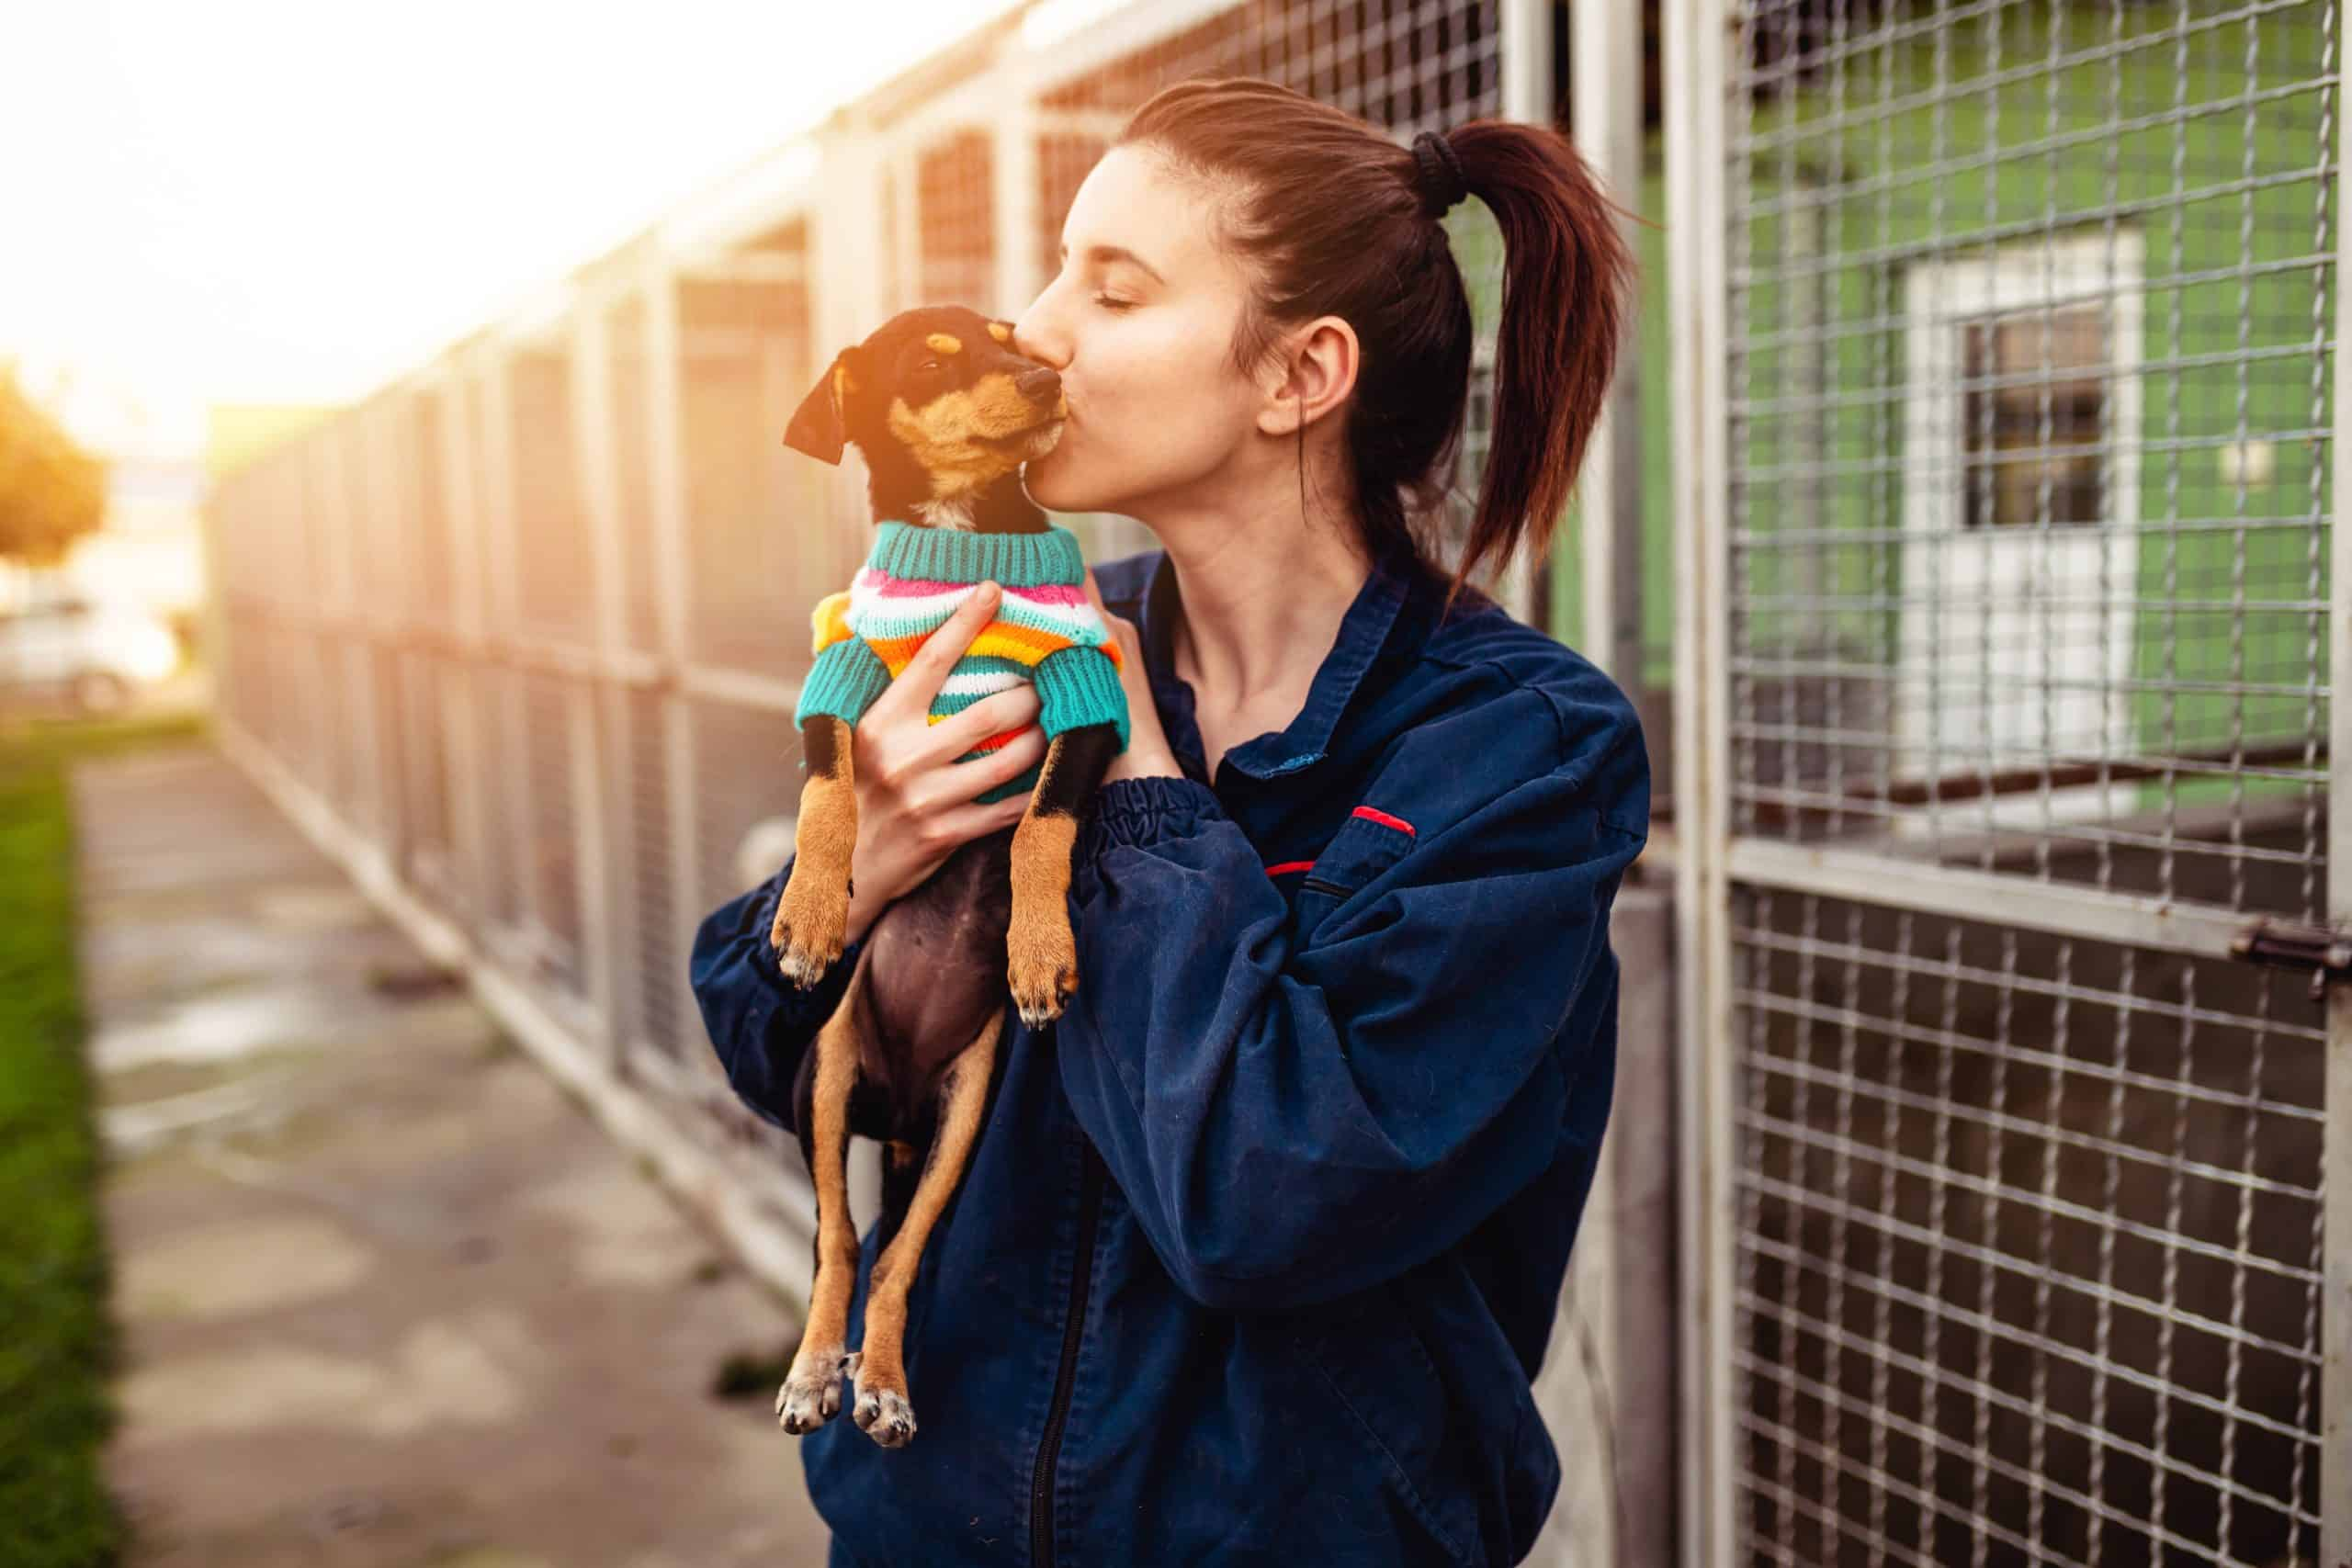 Young woman caring for a shelter dog.